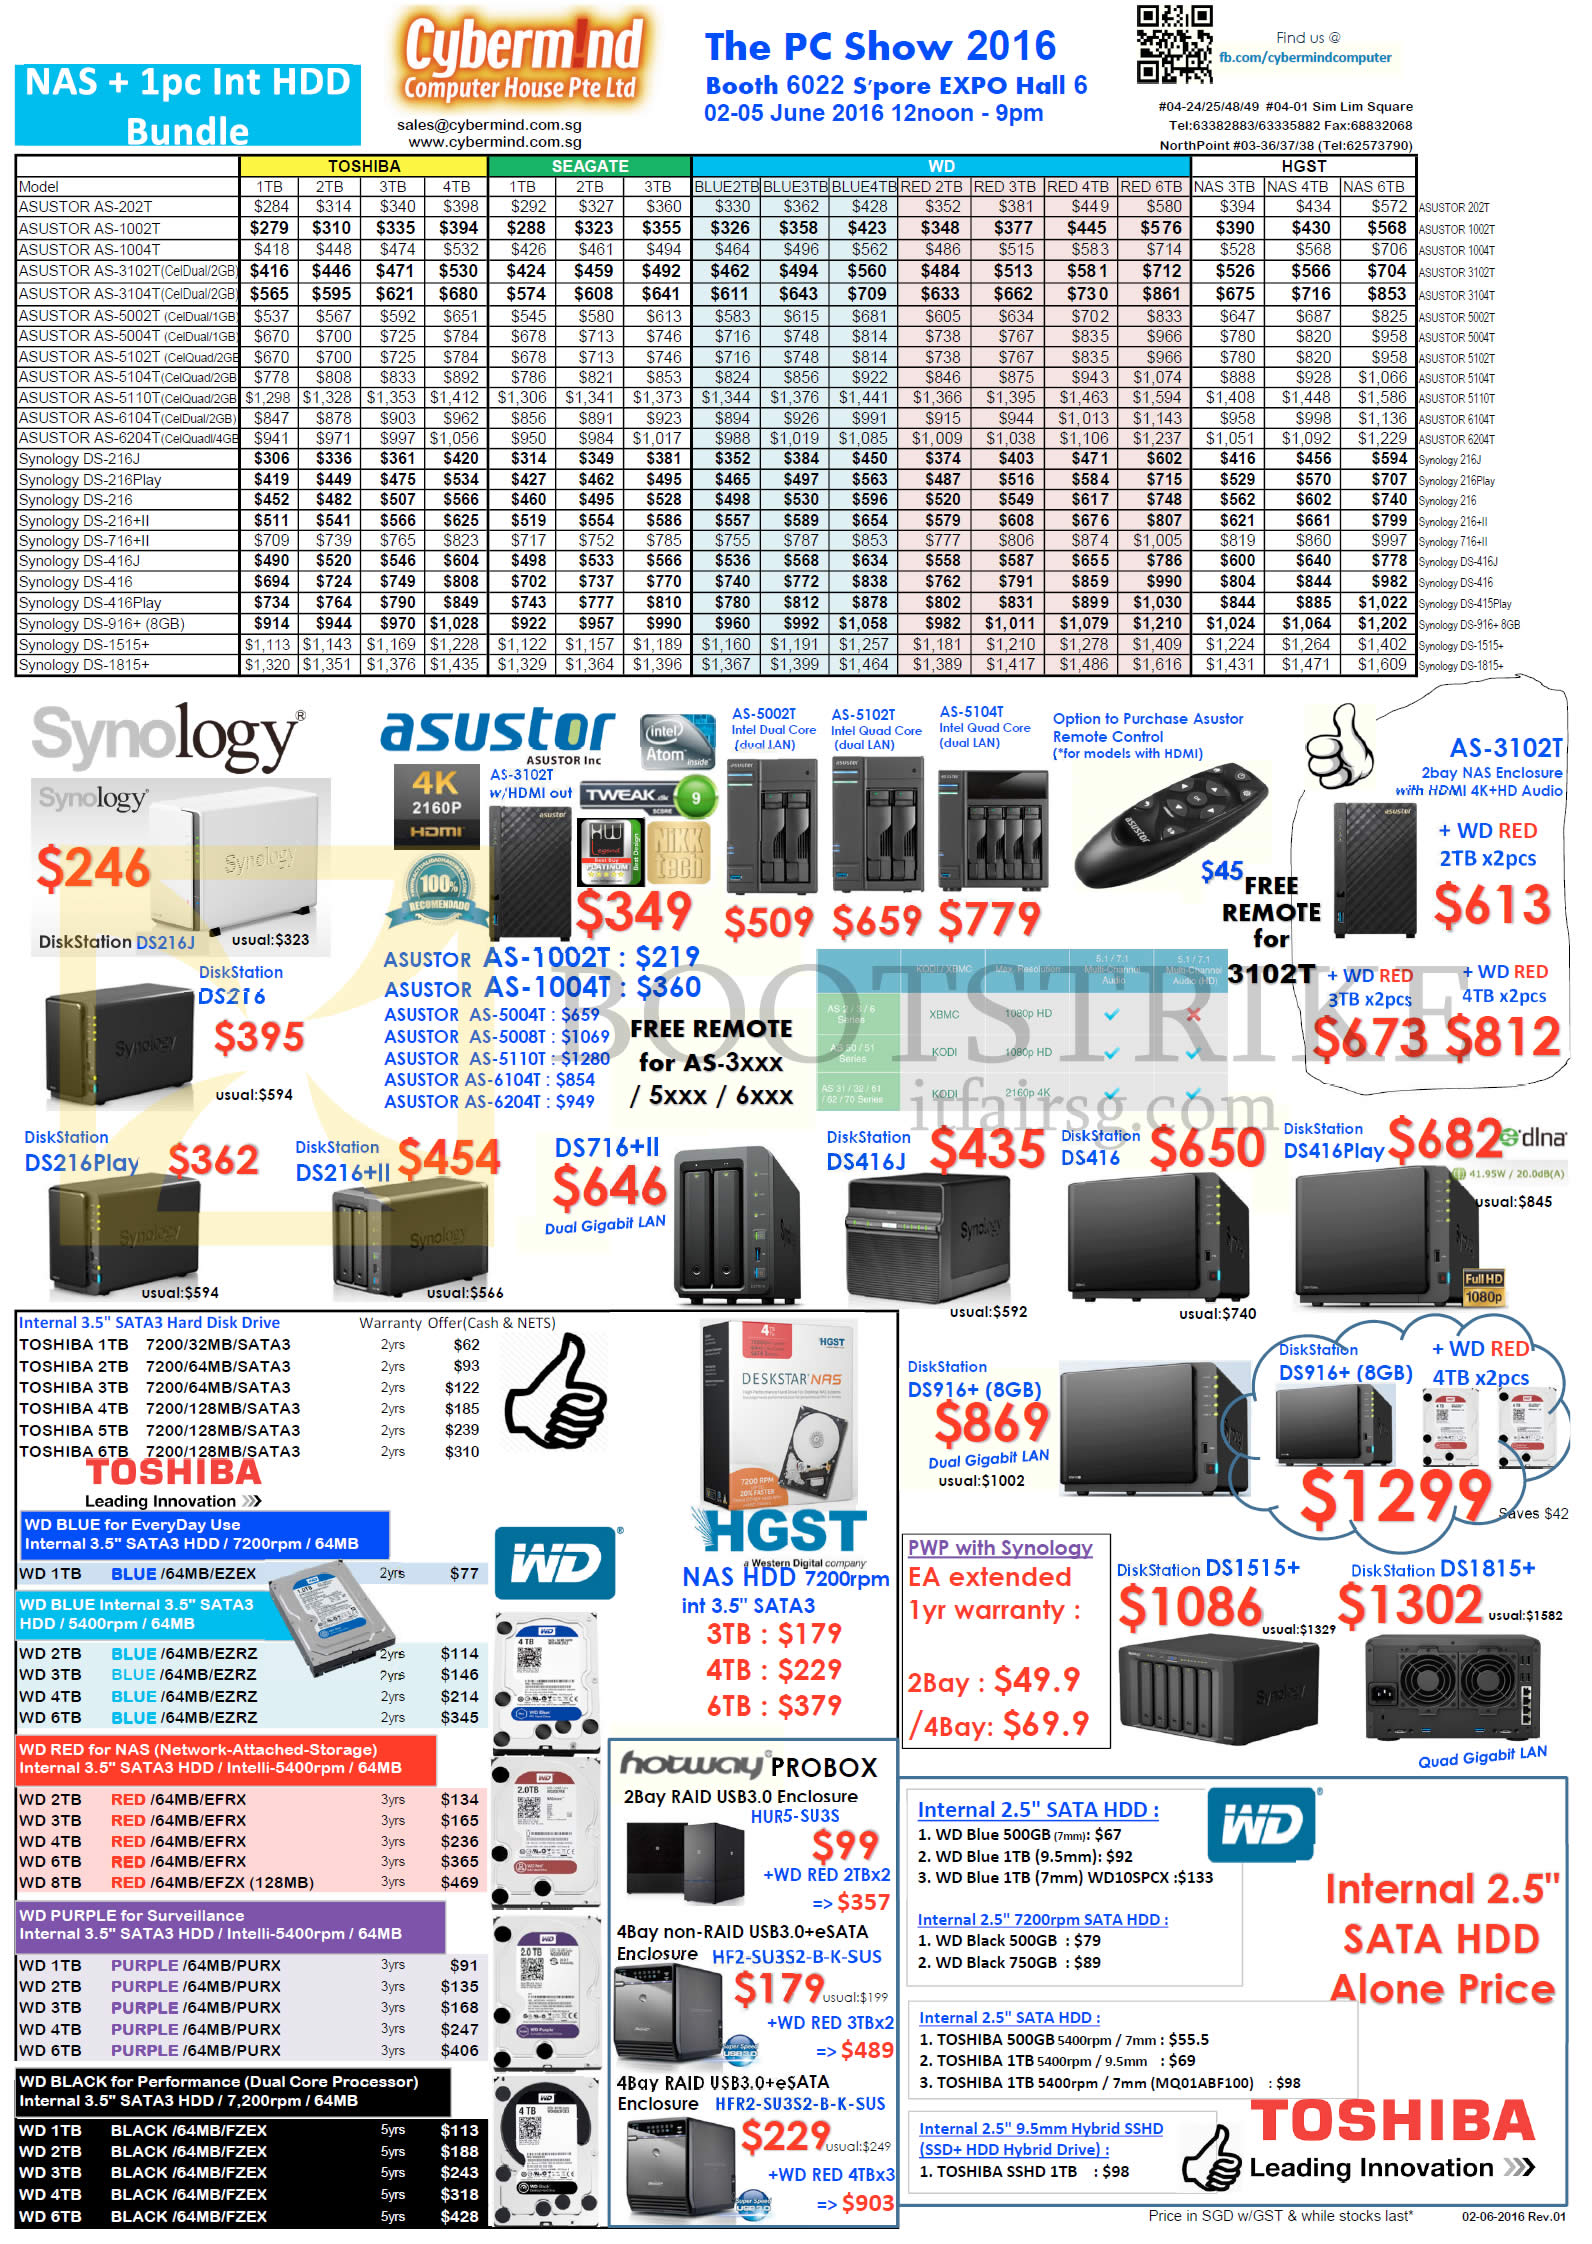 PC SHOW 2016 price list image brochure of Cybermind NAS, Hard Disk Drives, Synology, Asustor, Toshiba, WD, HGST, DS216Play, 216plusII, 716plus II, 416J, 416, 416Play, 916plus, 1515plus, 1815plus